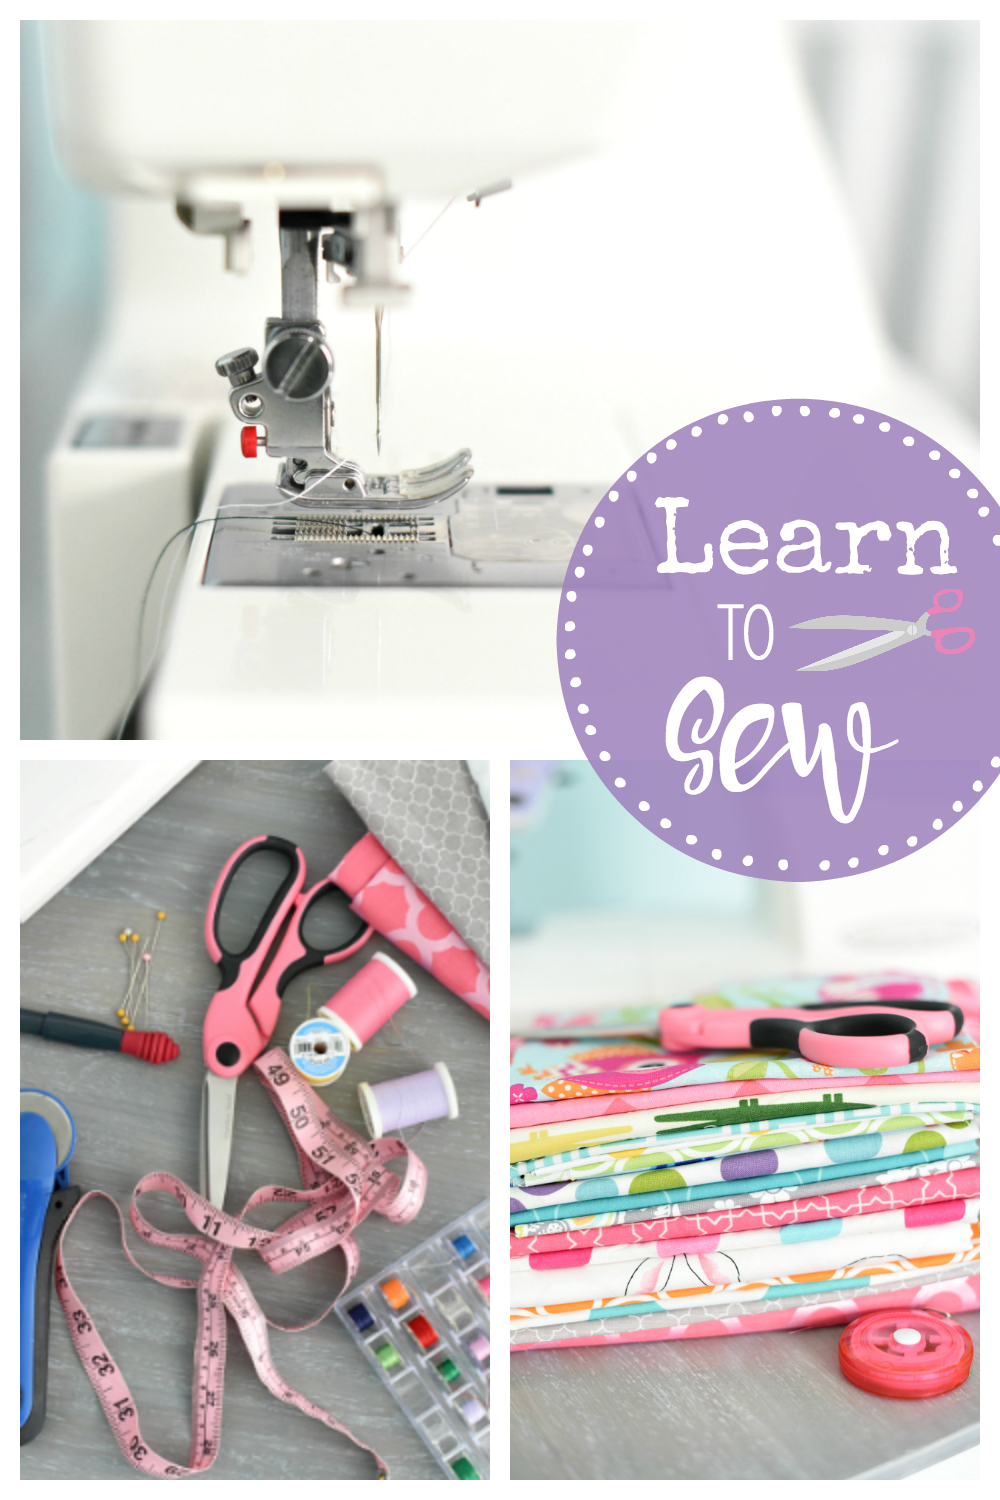 Home Sewing Crafts (With images) | Beginner sewing ...